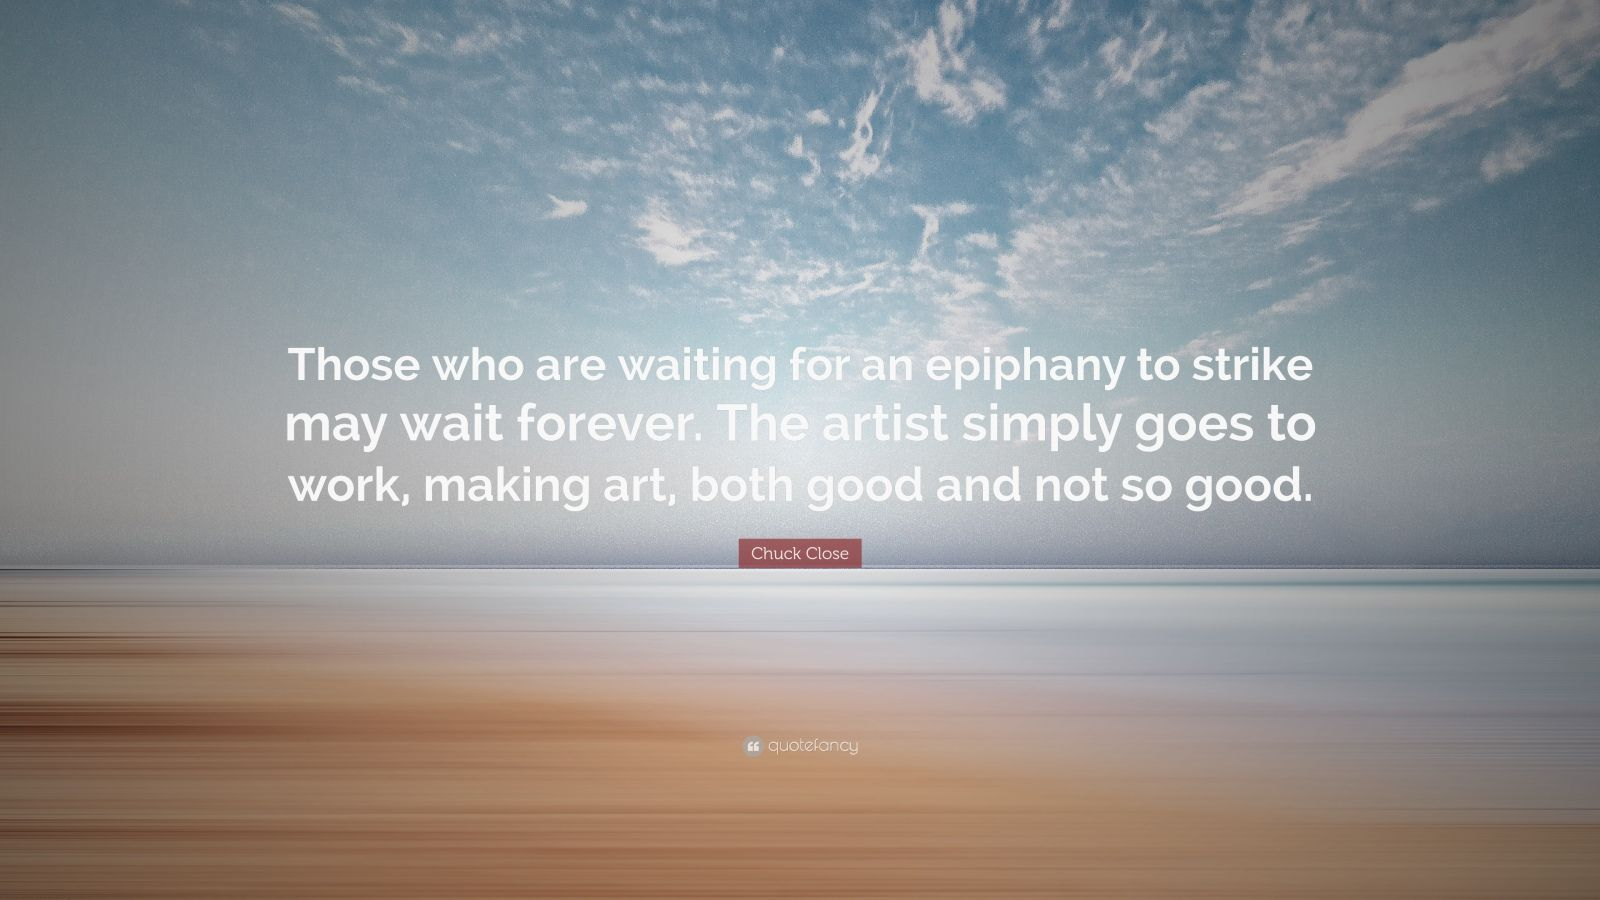 """Chuck Close Quote: """"Those who are waiting for an epiphany to strike may wait forever. The artist simply goes to work, making art, both good and not so good."""""""